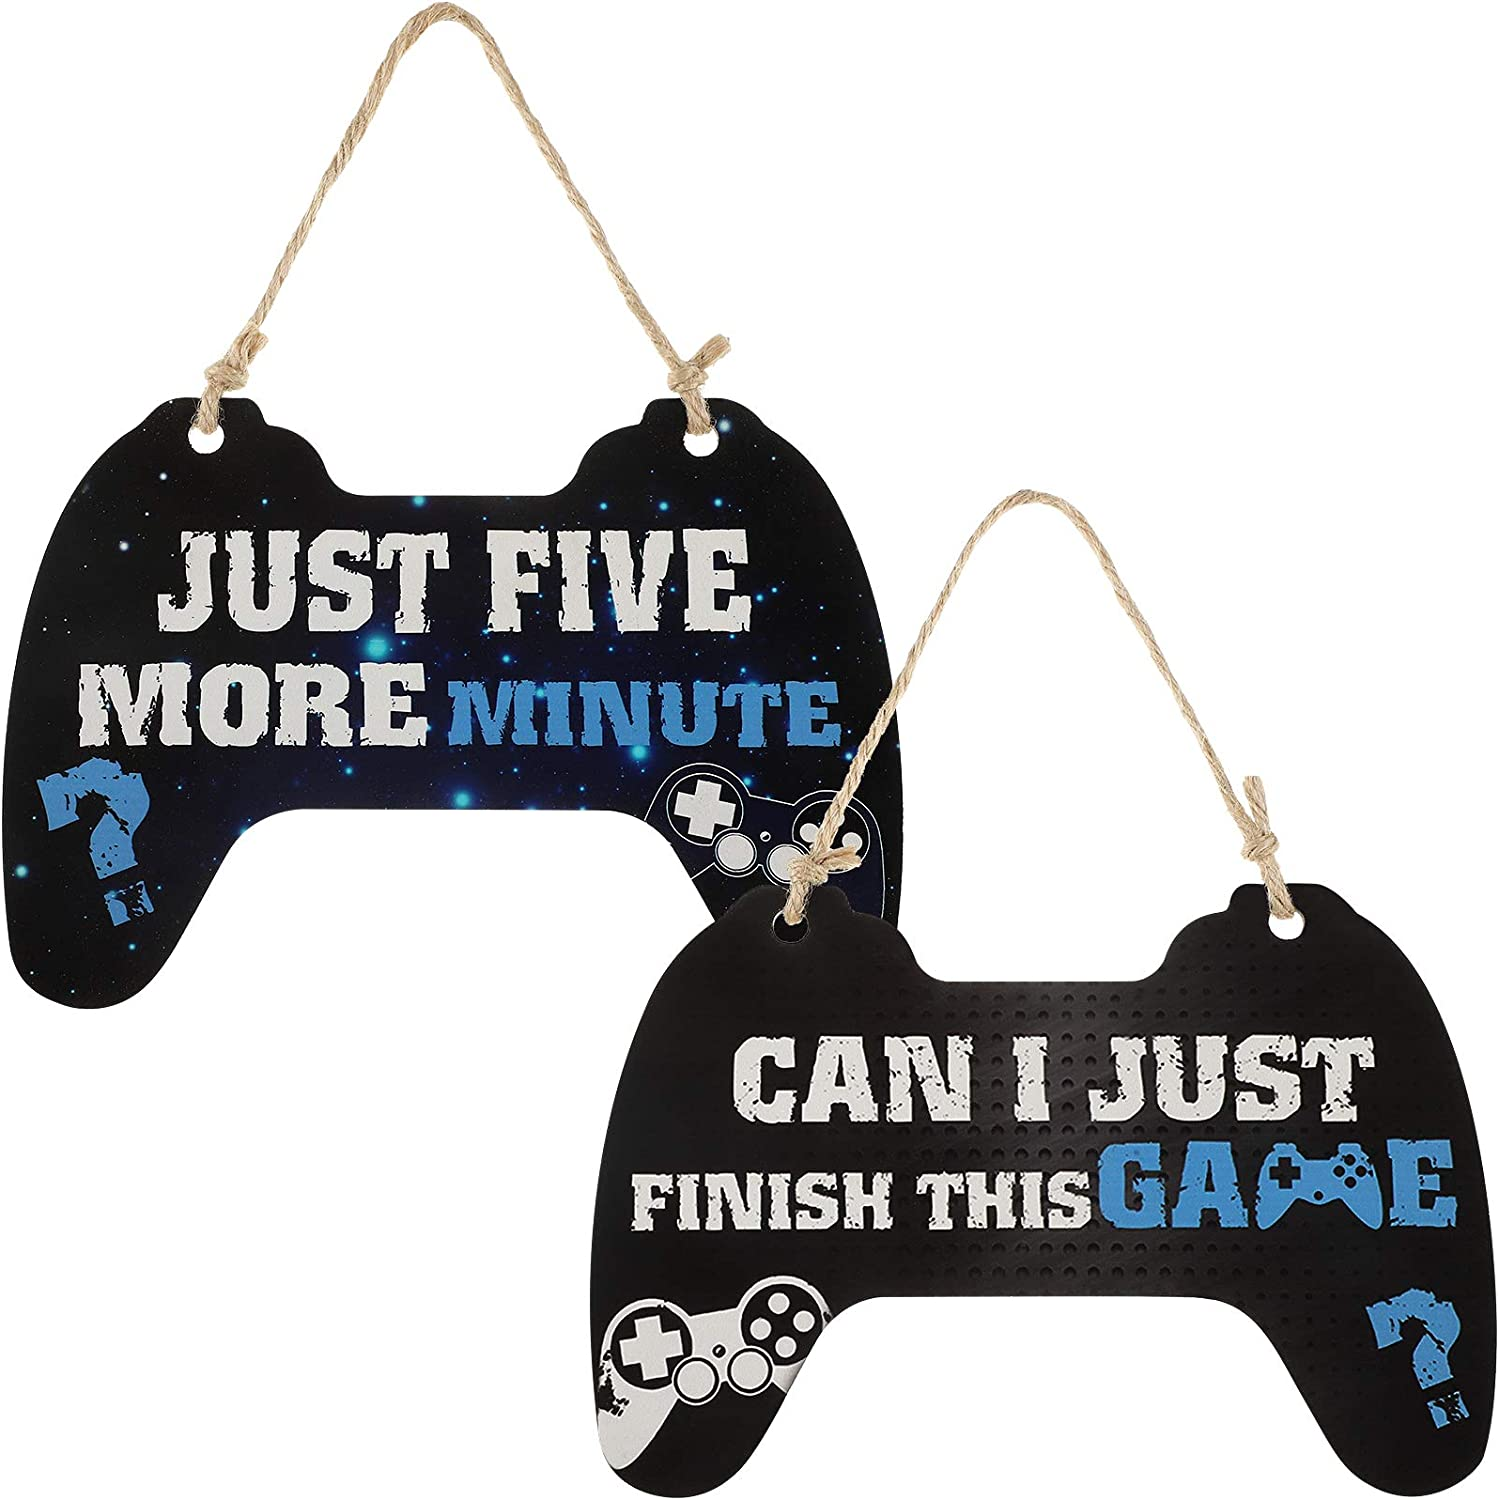 2 Pieces Door Gaming Sign Just Five More Minutes Gamer Signs Can I Just Finish This Game Bedroom Sign Game Controller Wood Sign Game Wood Sign Hanging Gamer Wooden Plaque Quote Hanging for Bedroom